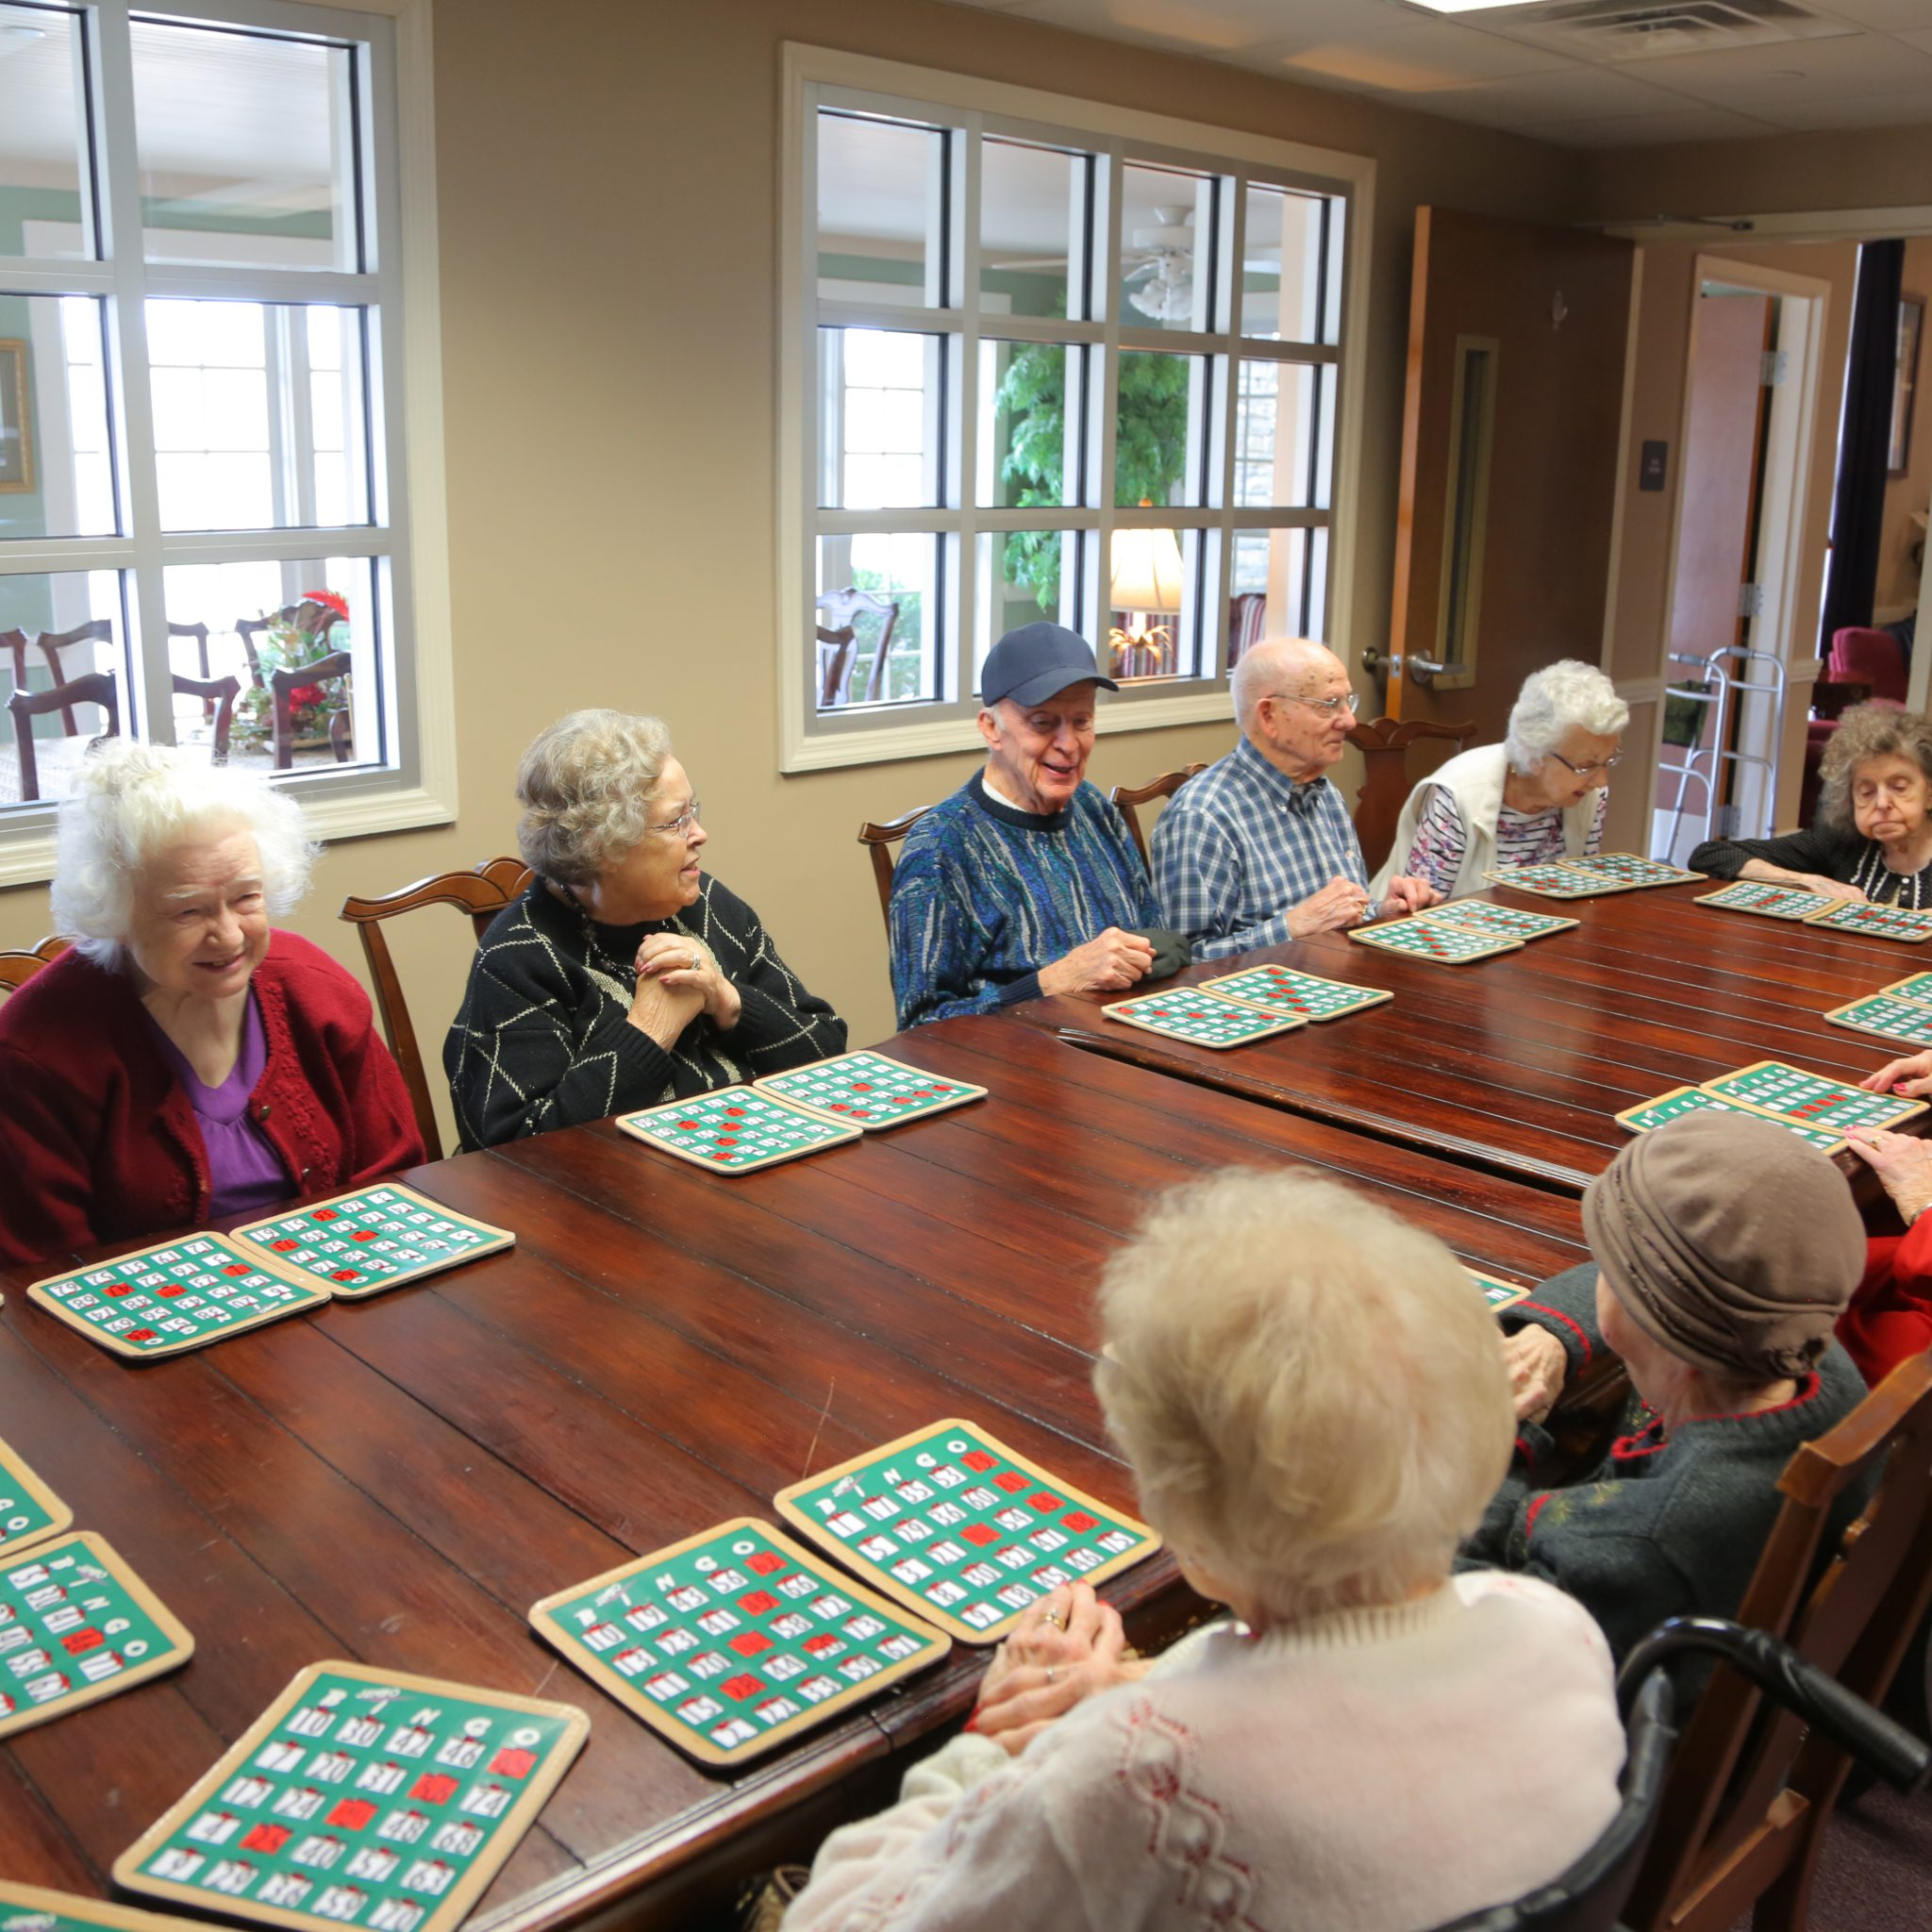 bingosquare - Life at Windsor Gardens